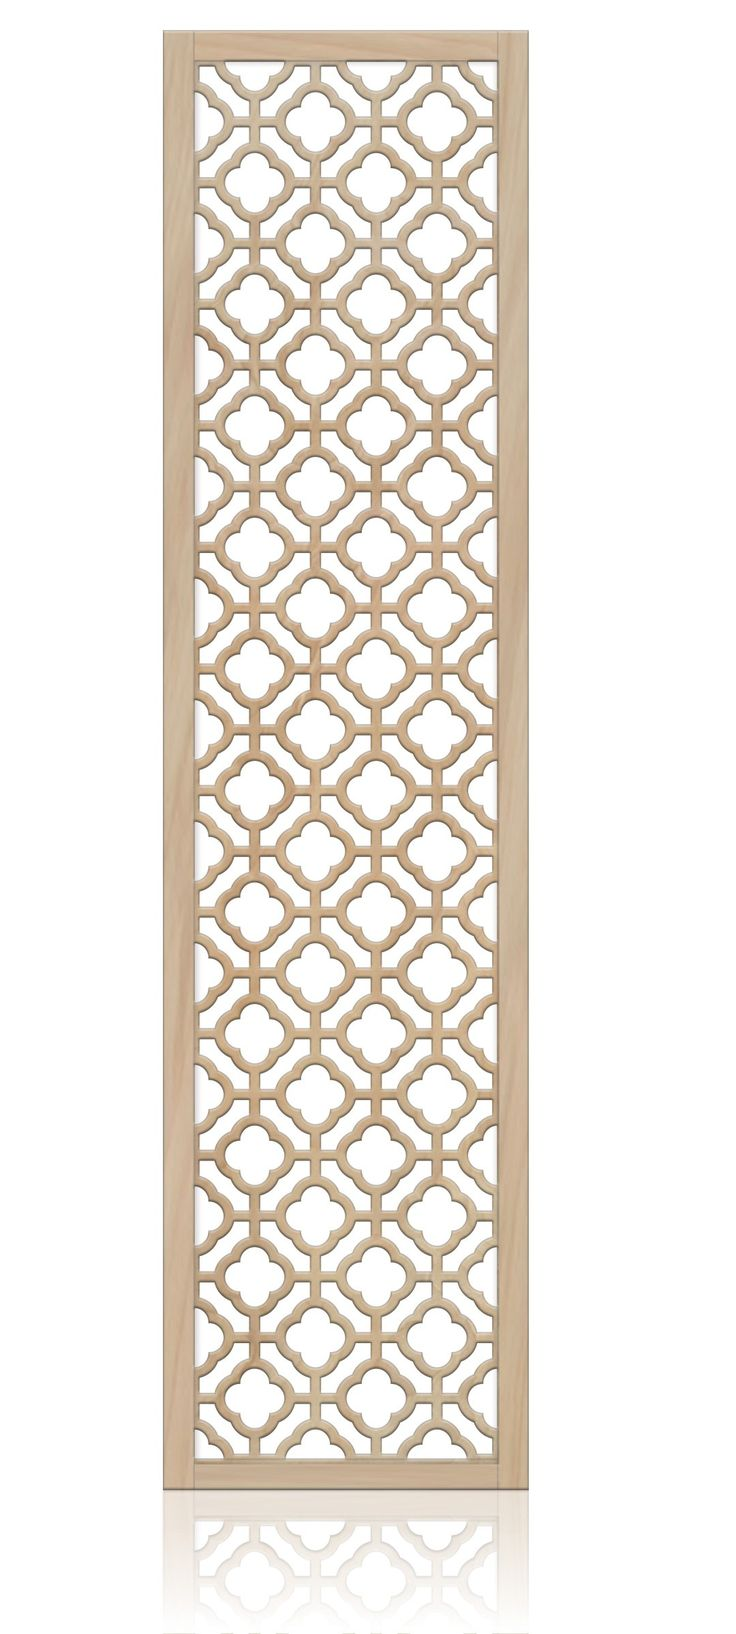 """Notre Dame"" quatrefoil room divider screen. 24x80 MDF $213. The perfect headboard!"